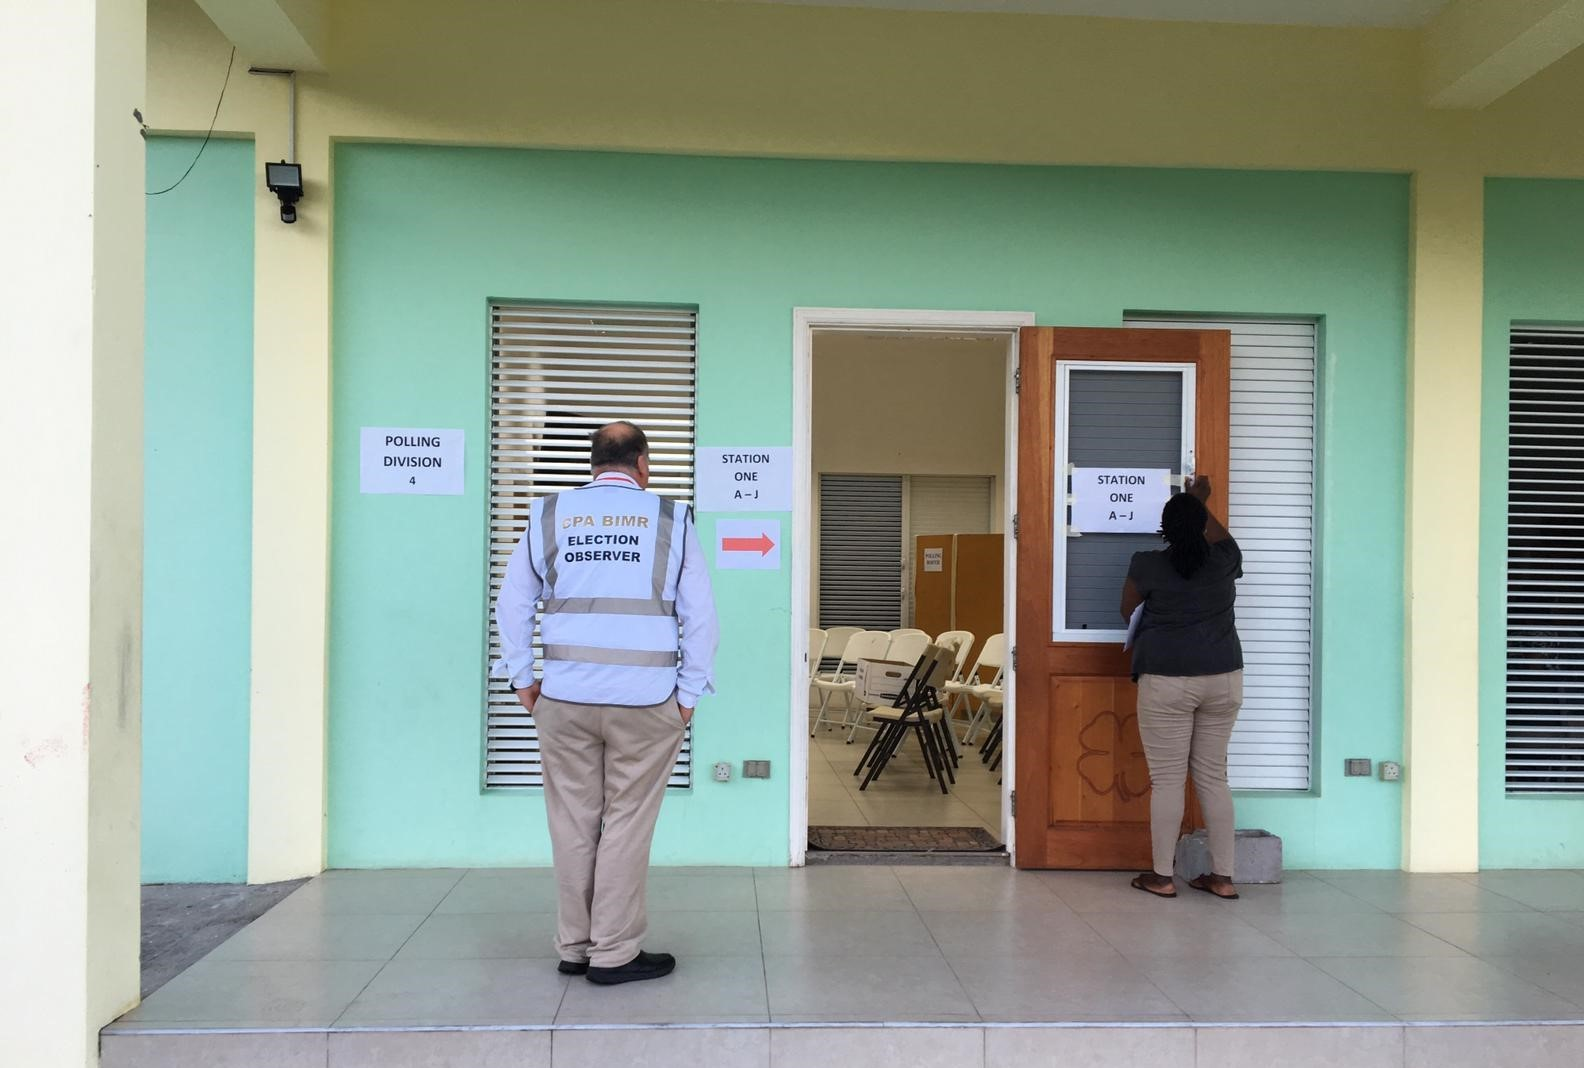 Opening of a polling station on election day